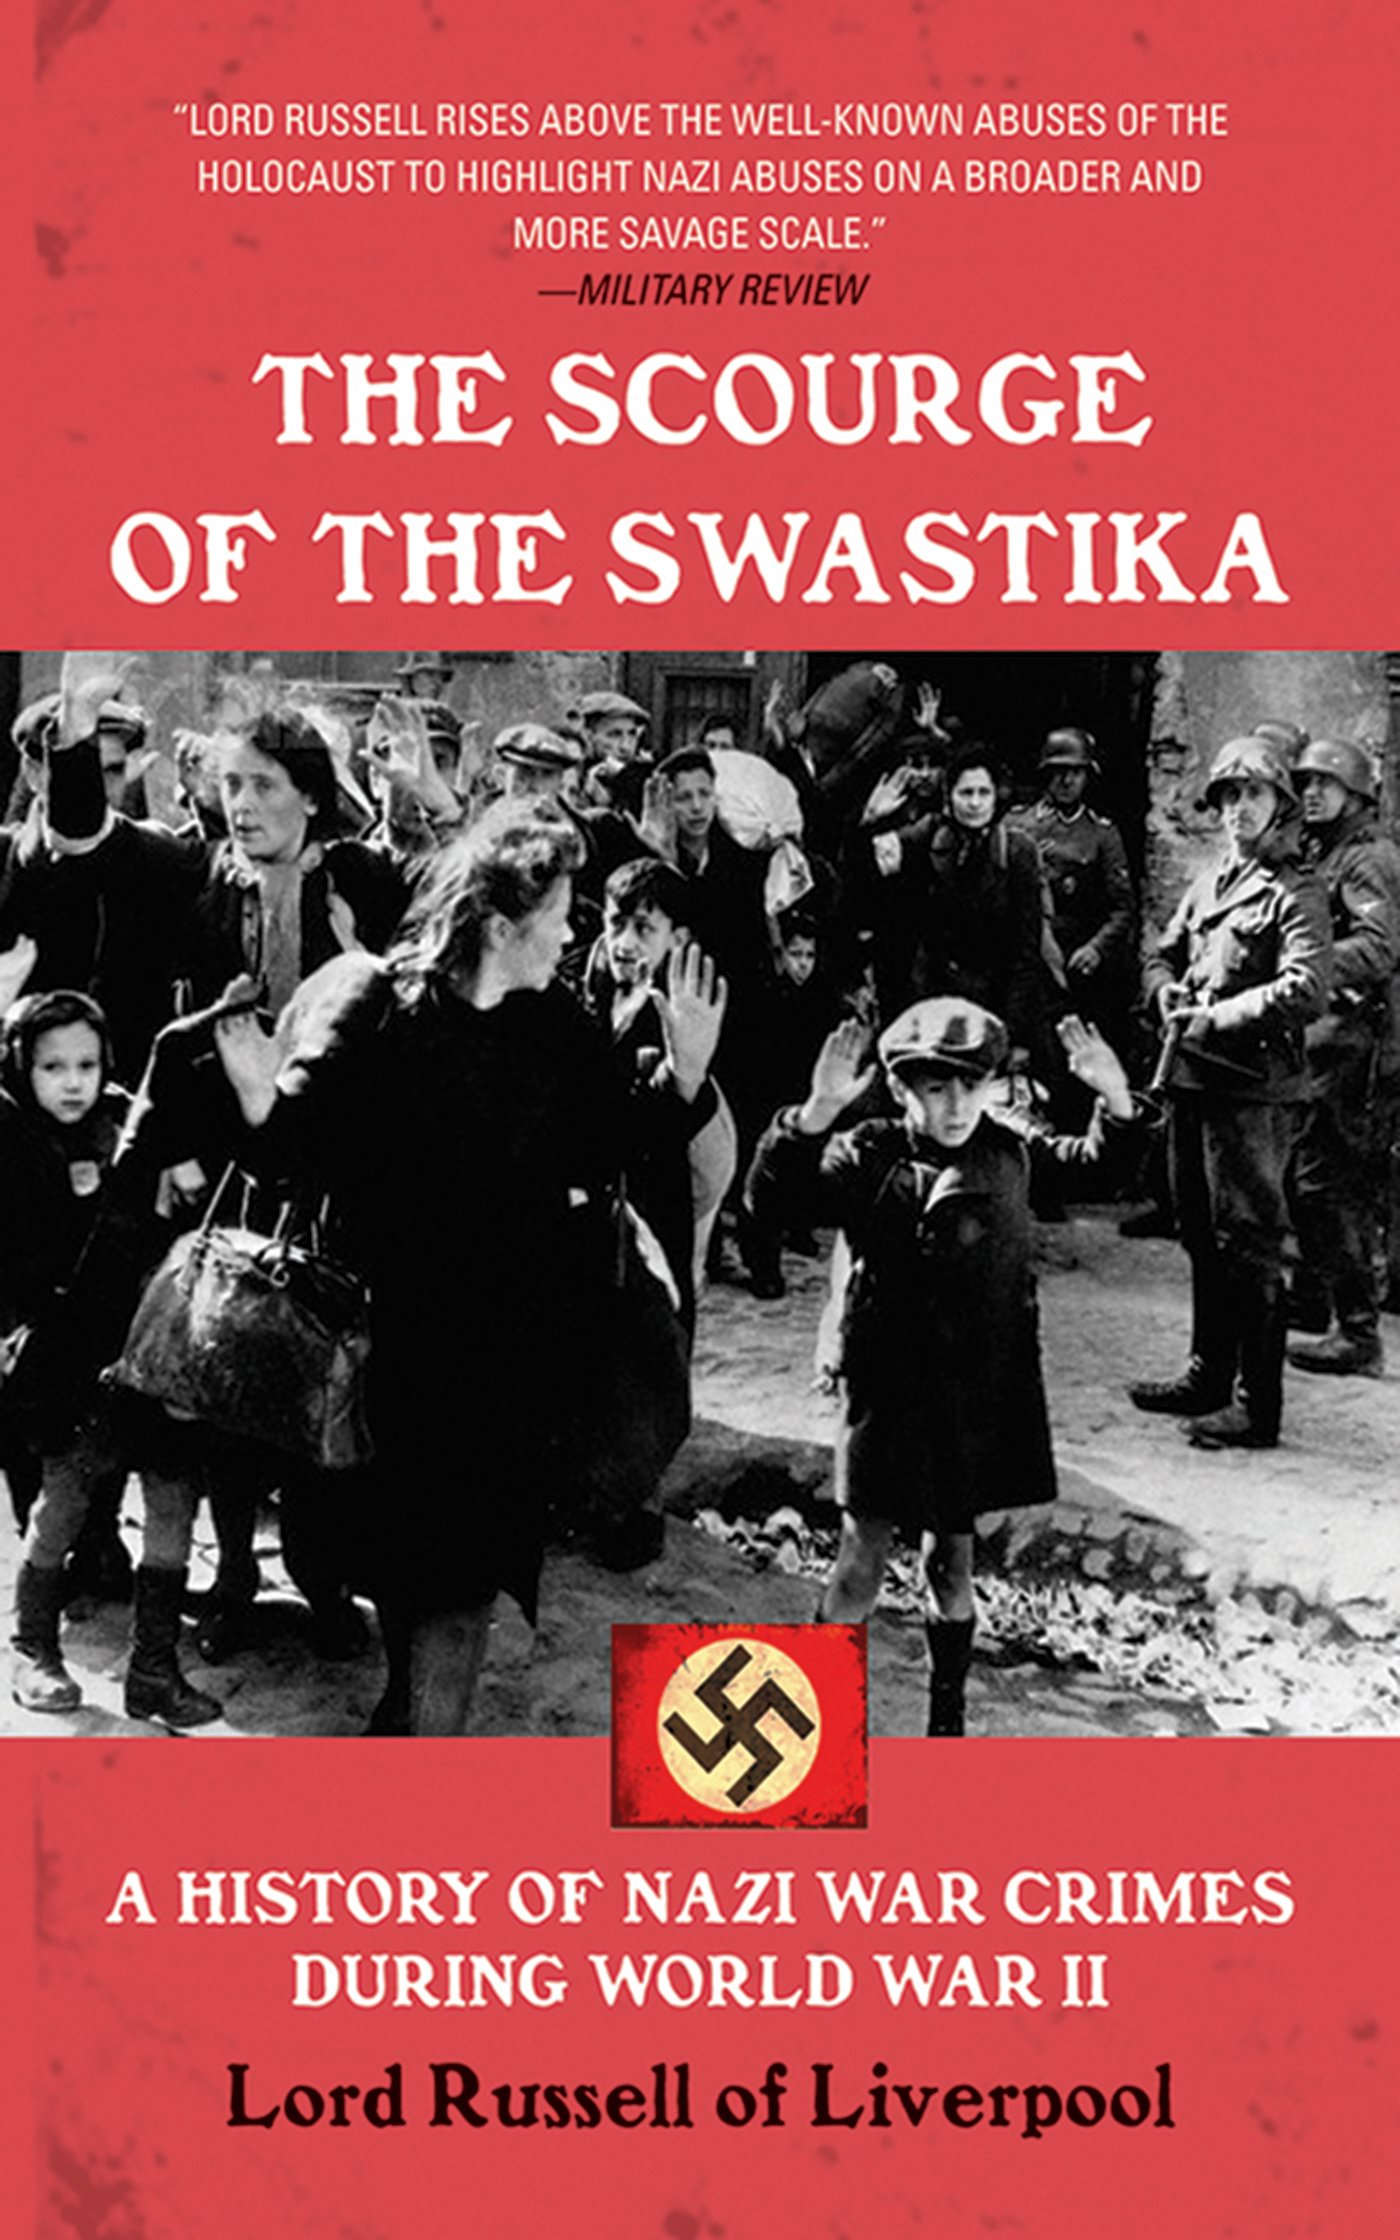 Scourge Swastika History Crimes During product image